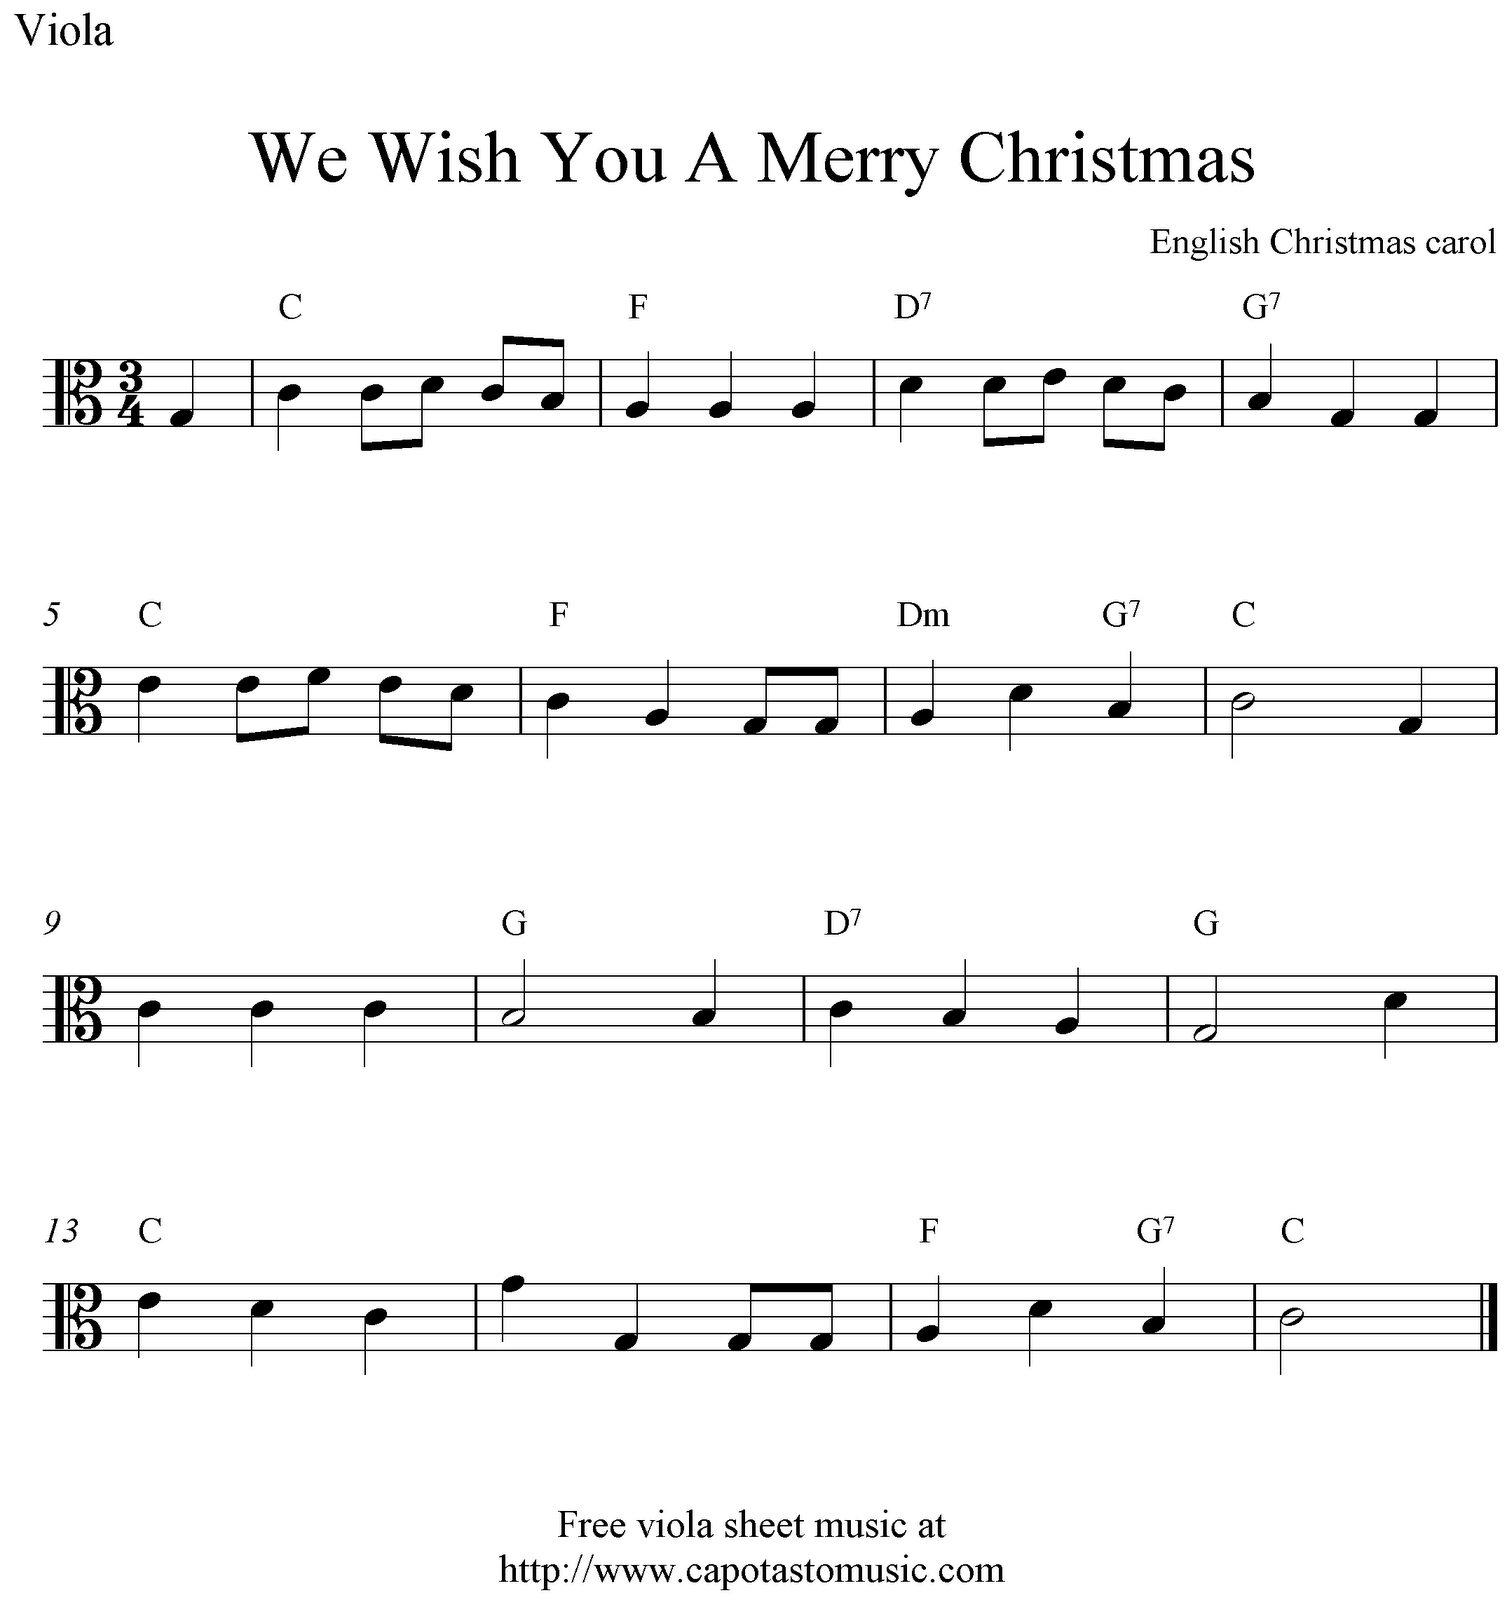 Free Easy Christmas Viola Sheet Music, We Wish You A Merry